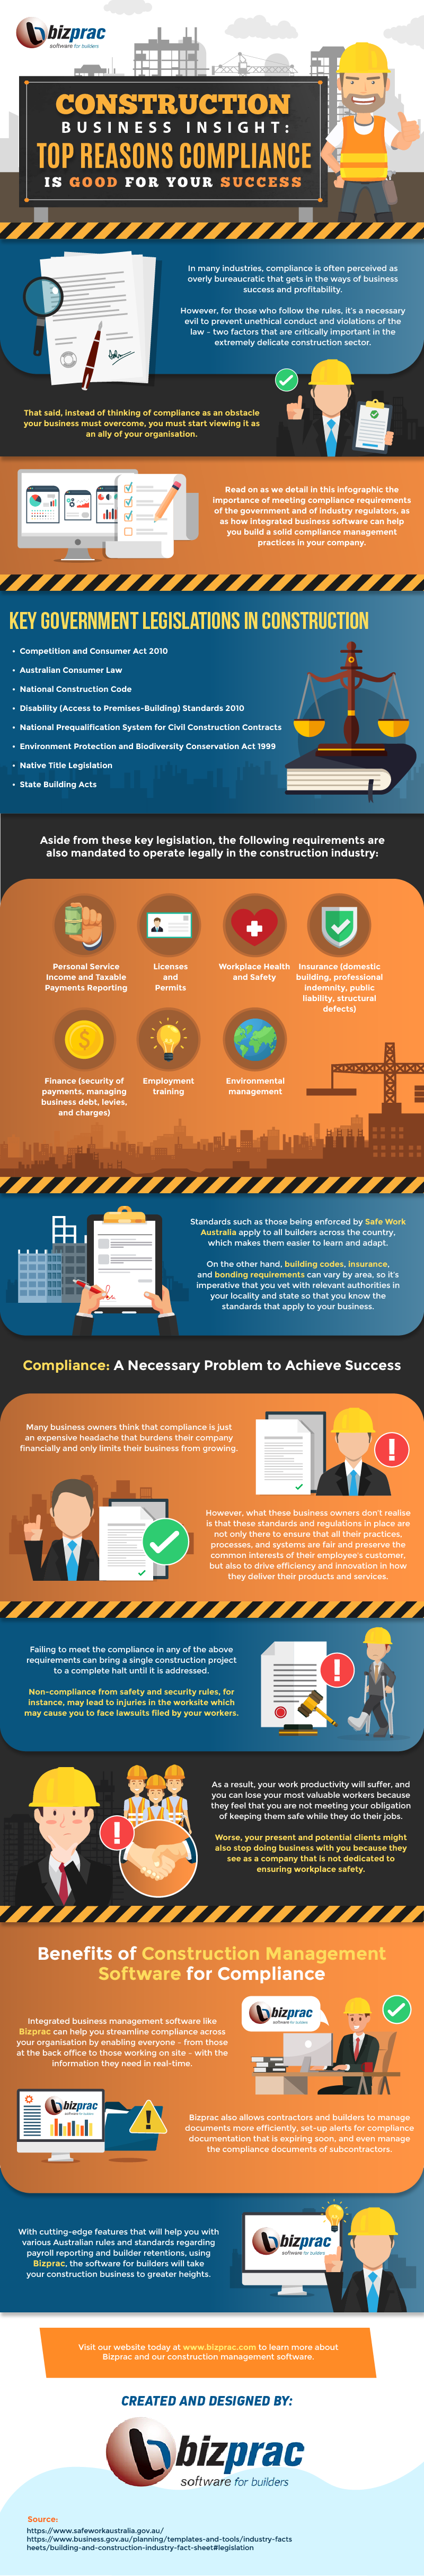 Construction Business Insight: Top Reasons Compliance is Good For Your Success - Infographic